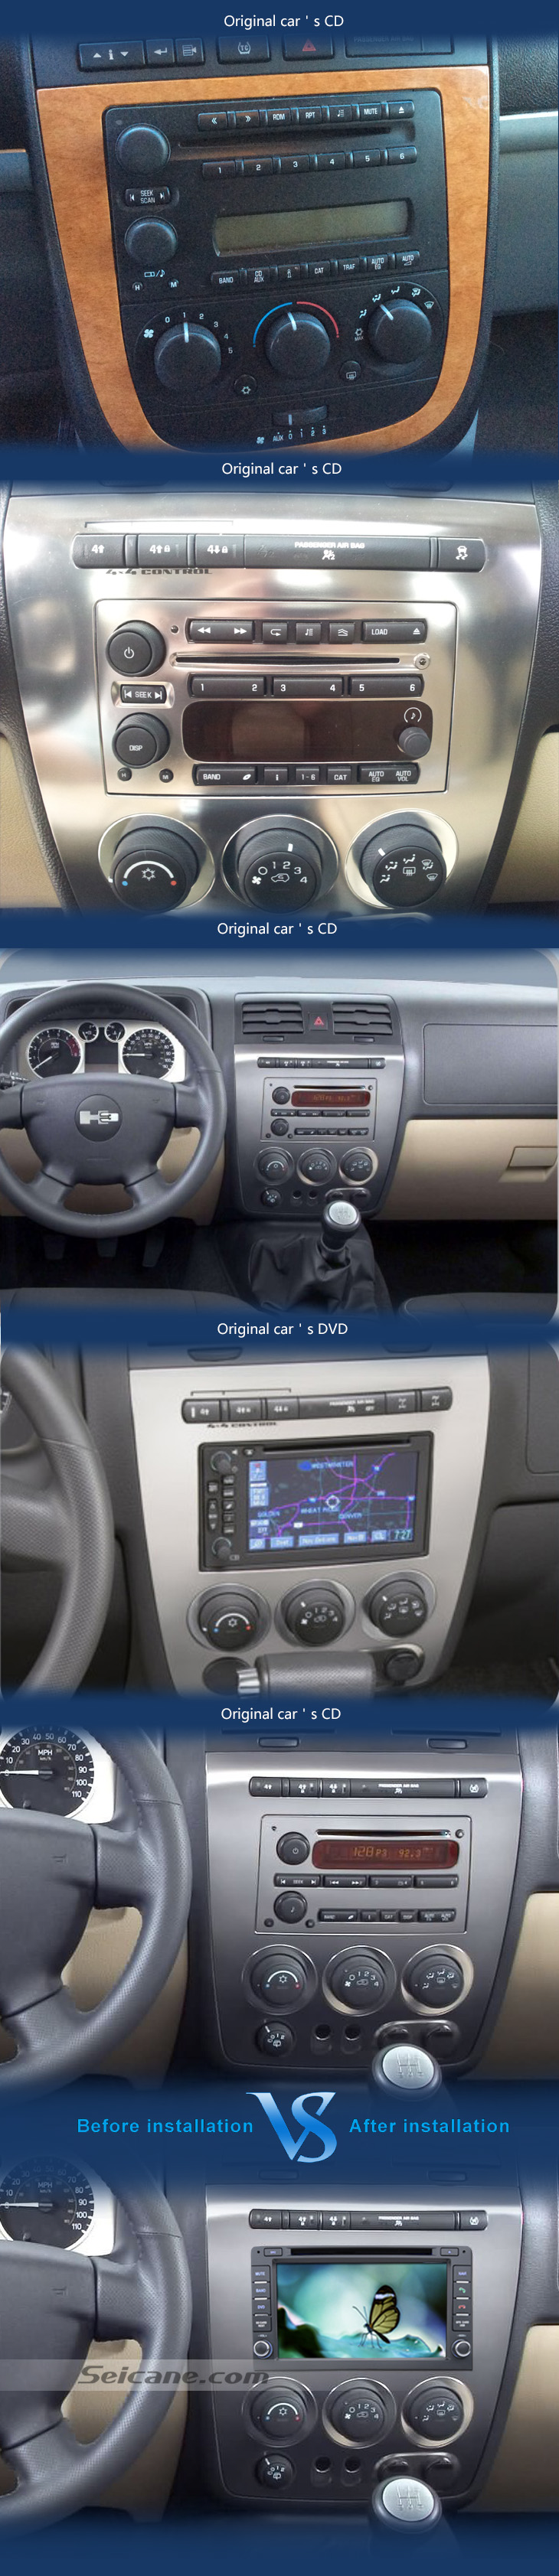 7 gps navigation system for hummer h3 2006 2009 3d tft lcd car dvd aeproducttsubject publicscrutiny Choice Image